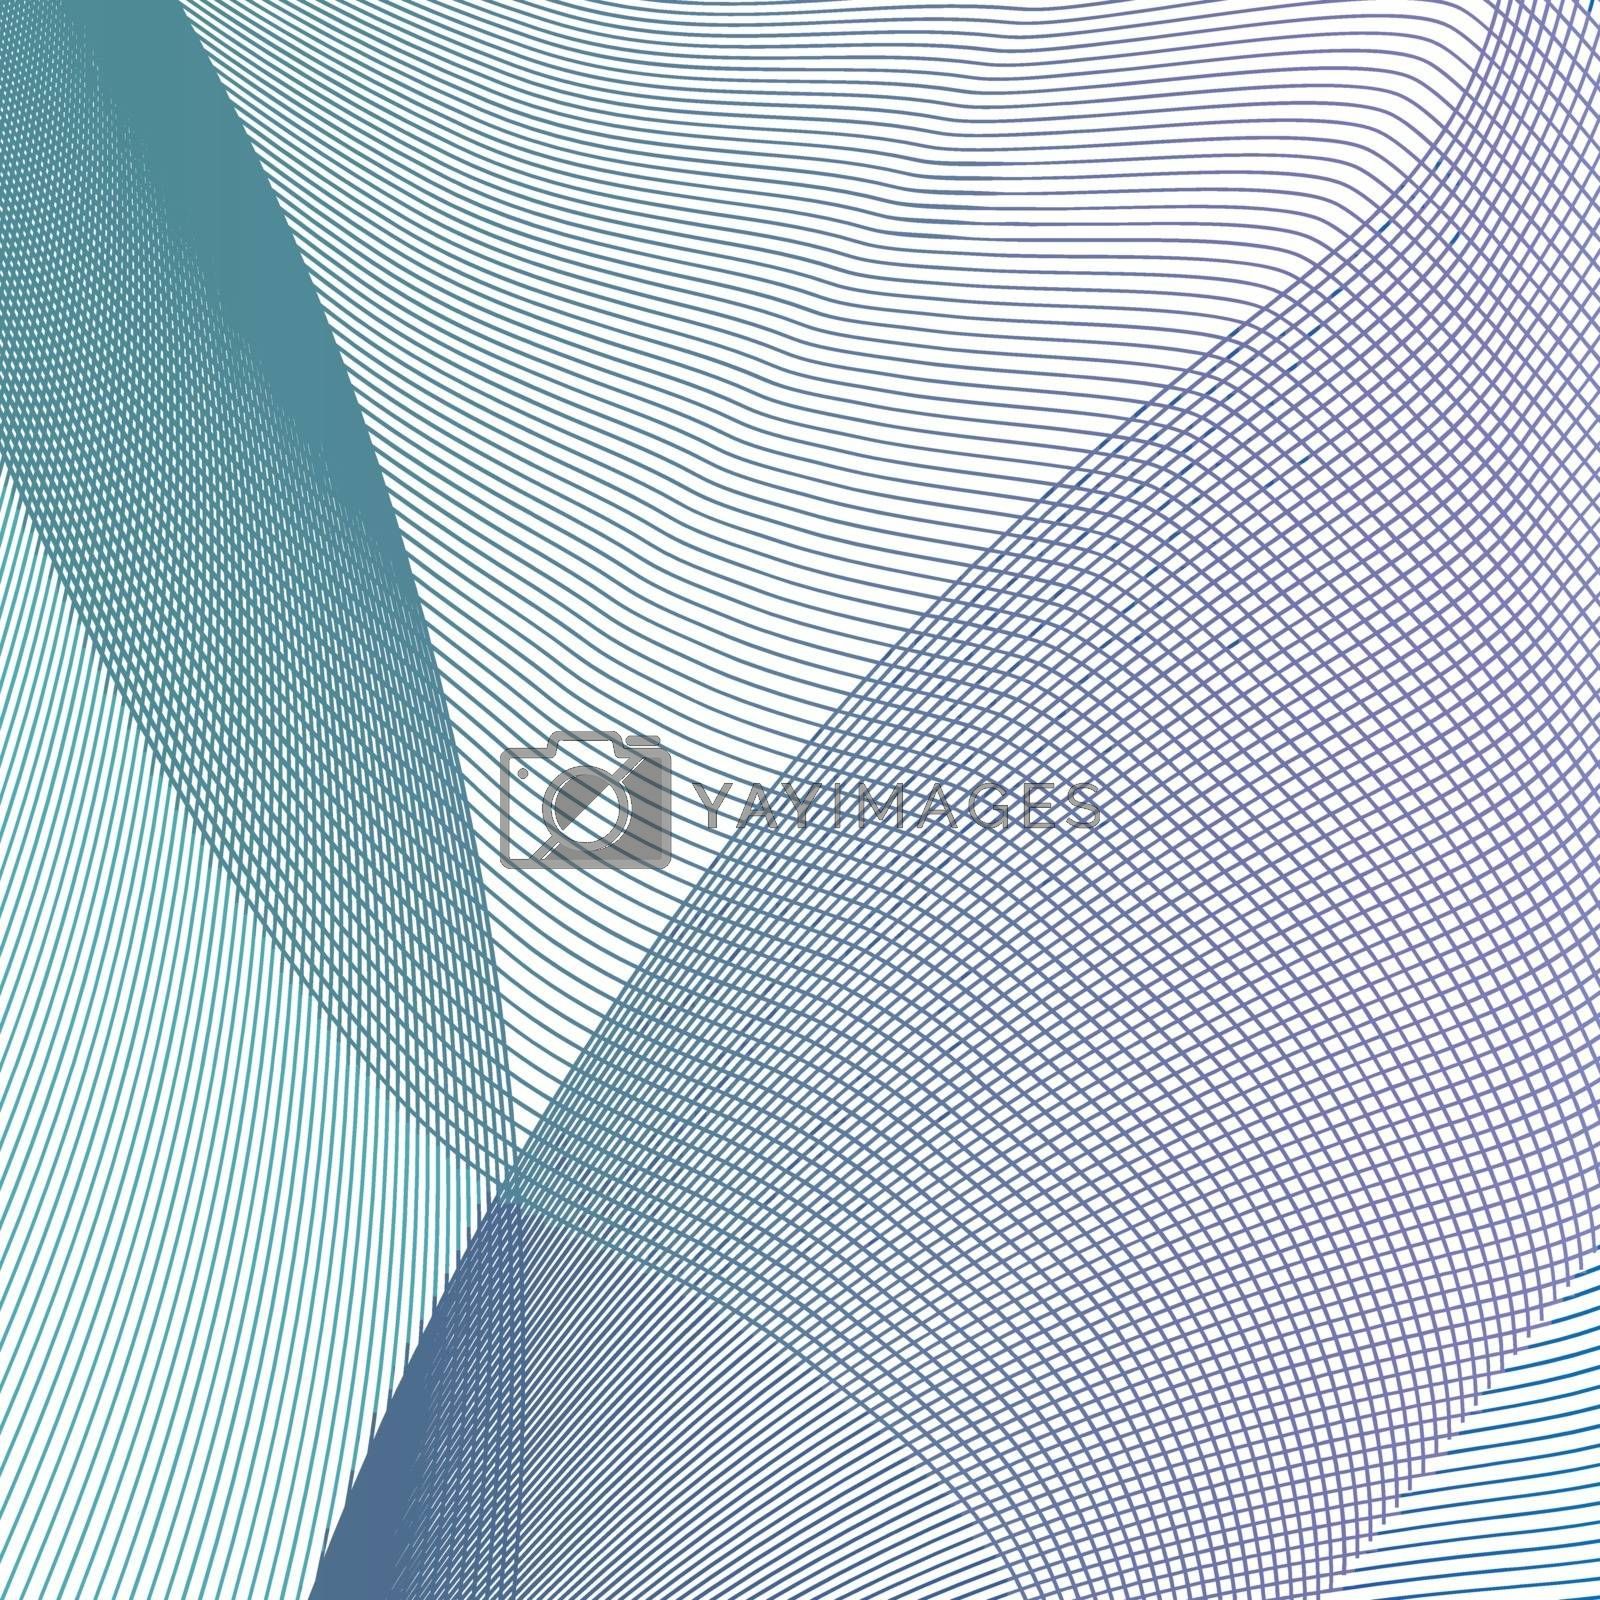 Abstract background with lines and balls for decoration and design